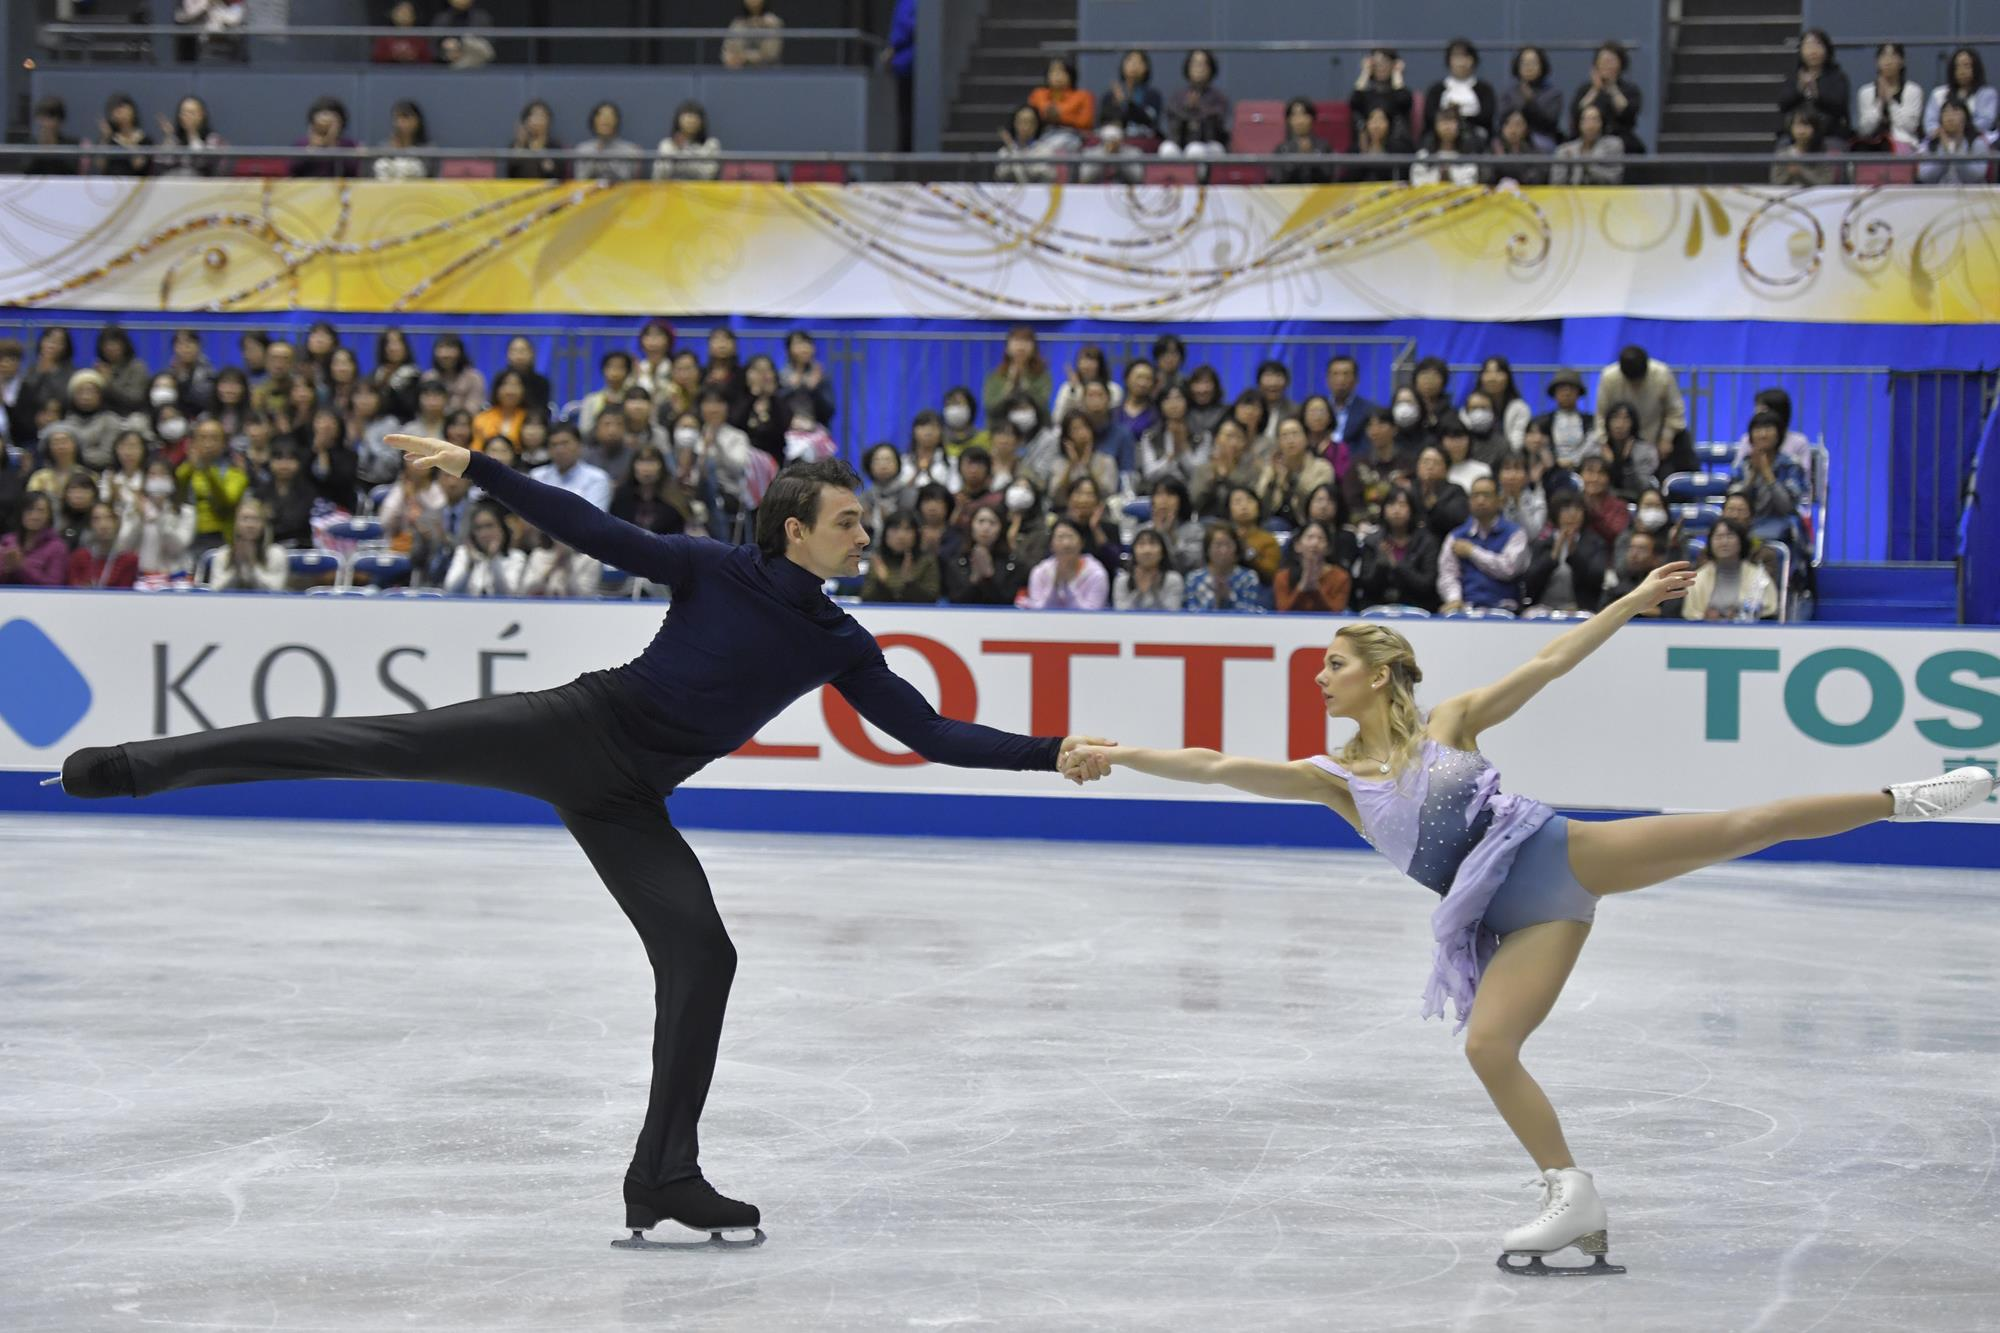 Ice skating married couples